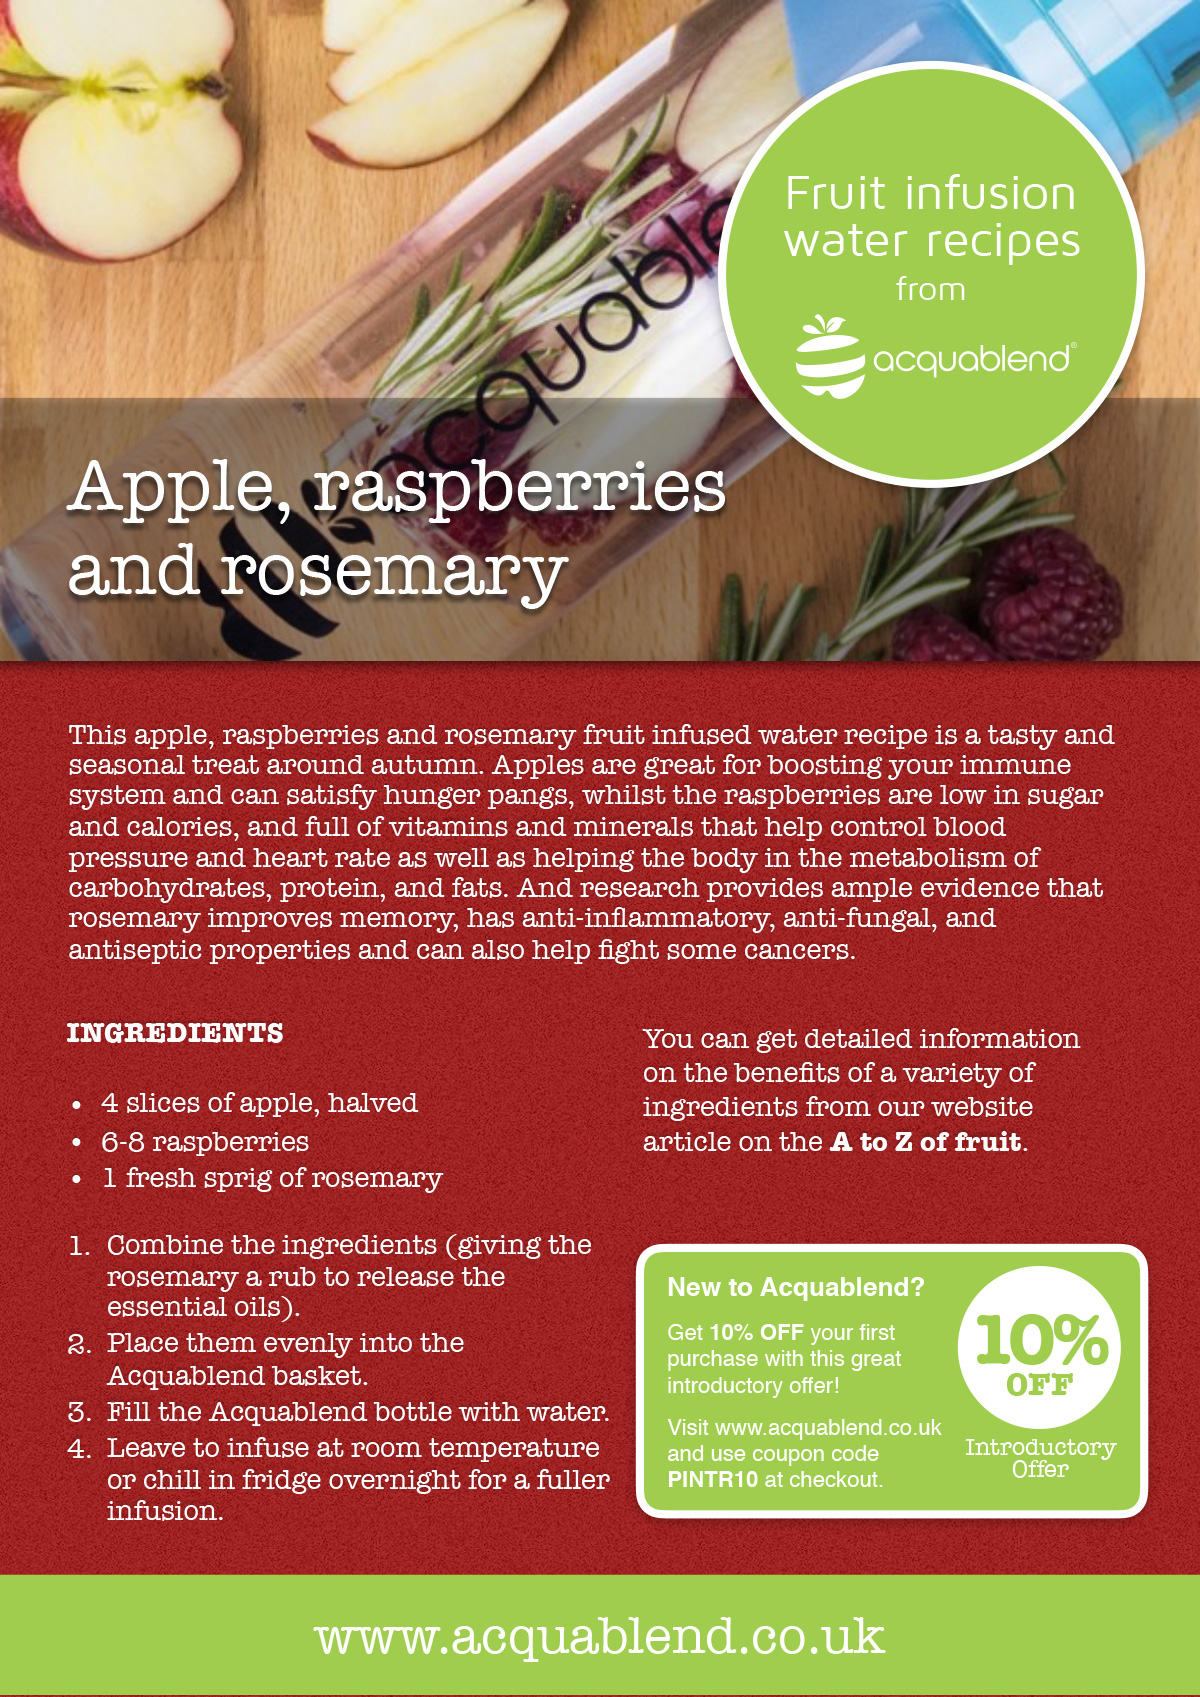 Apple, raspberries and rosemary fruit infused water recipe.